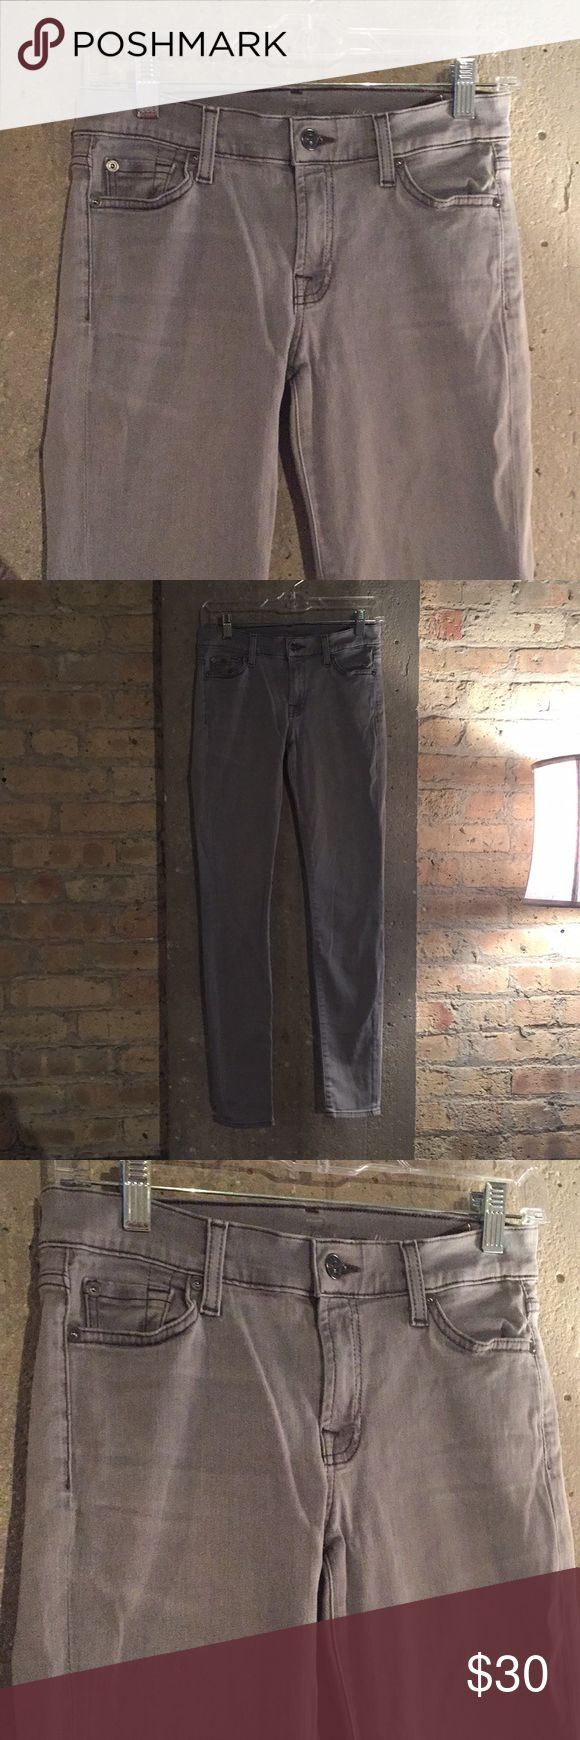 7 for All Mankind skinny light gray jeans size 27 Excellent condition and very comfortable. I am 5'7 around 135 lbs and these fit amazingly! The light grey is a really nice color and goes with lots of shirts/blouses. 7 For All Mankind Jeans Skinny